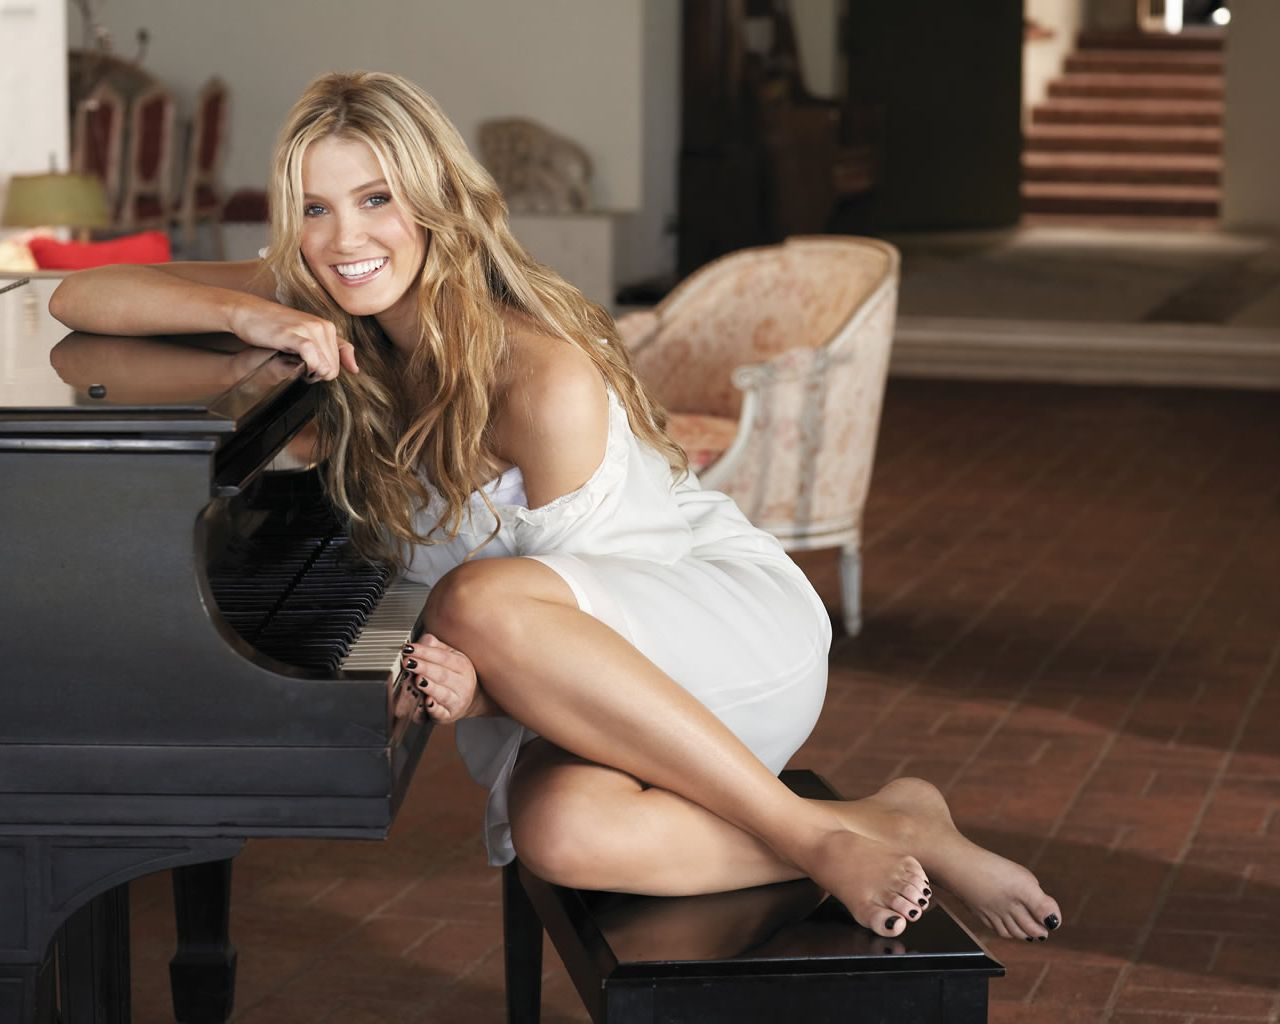 Delta+Burke+Feet Celebrity Feet Magazine: Delta Goodrem Feet